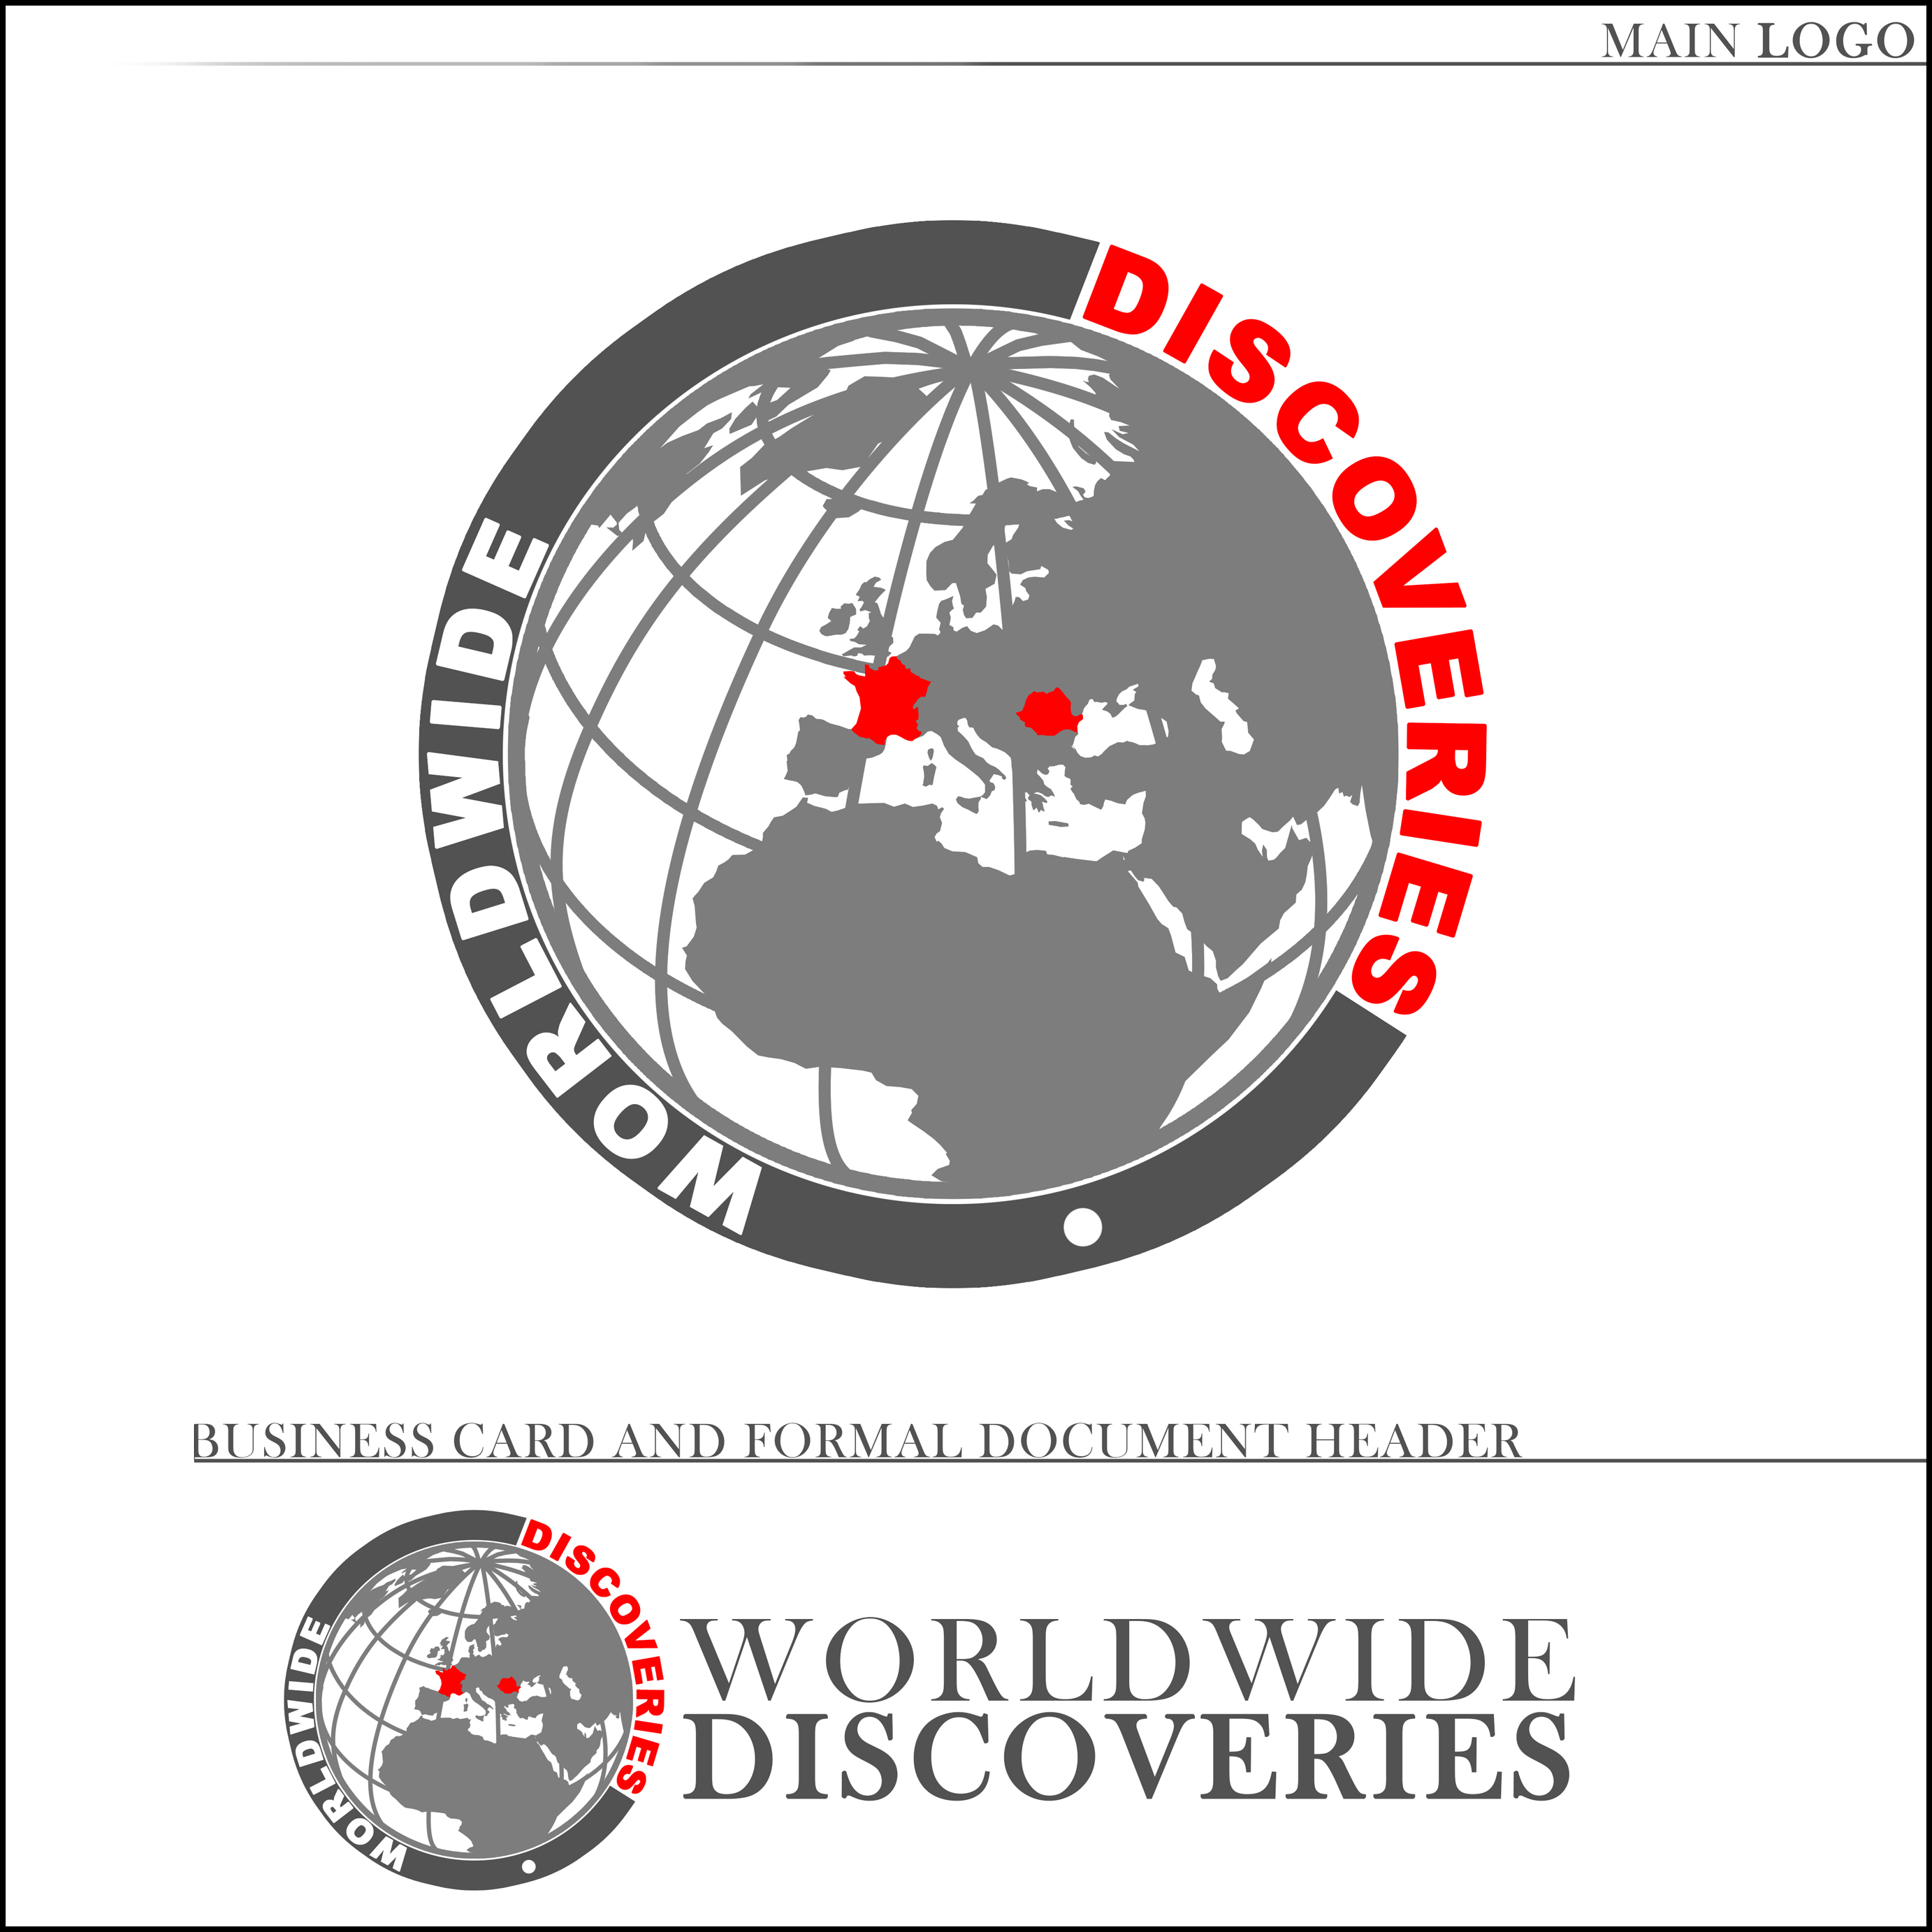 Worldwide Discoveries Logo